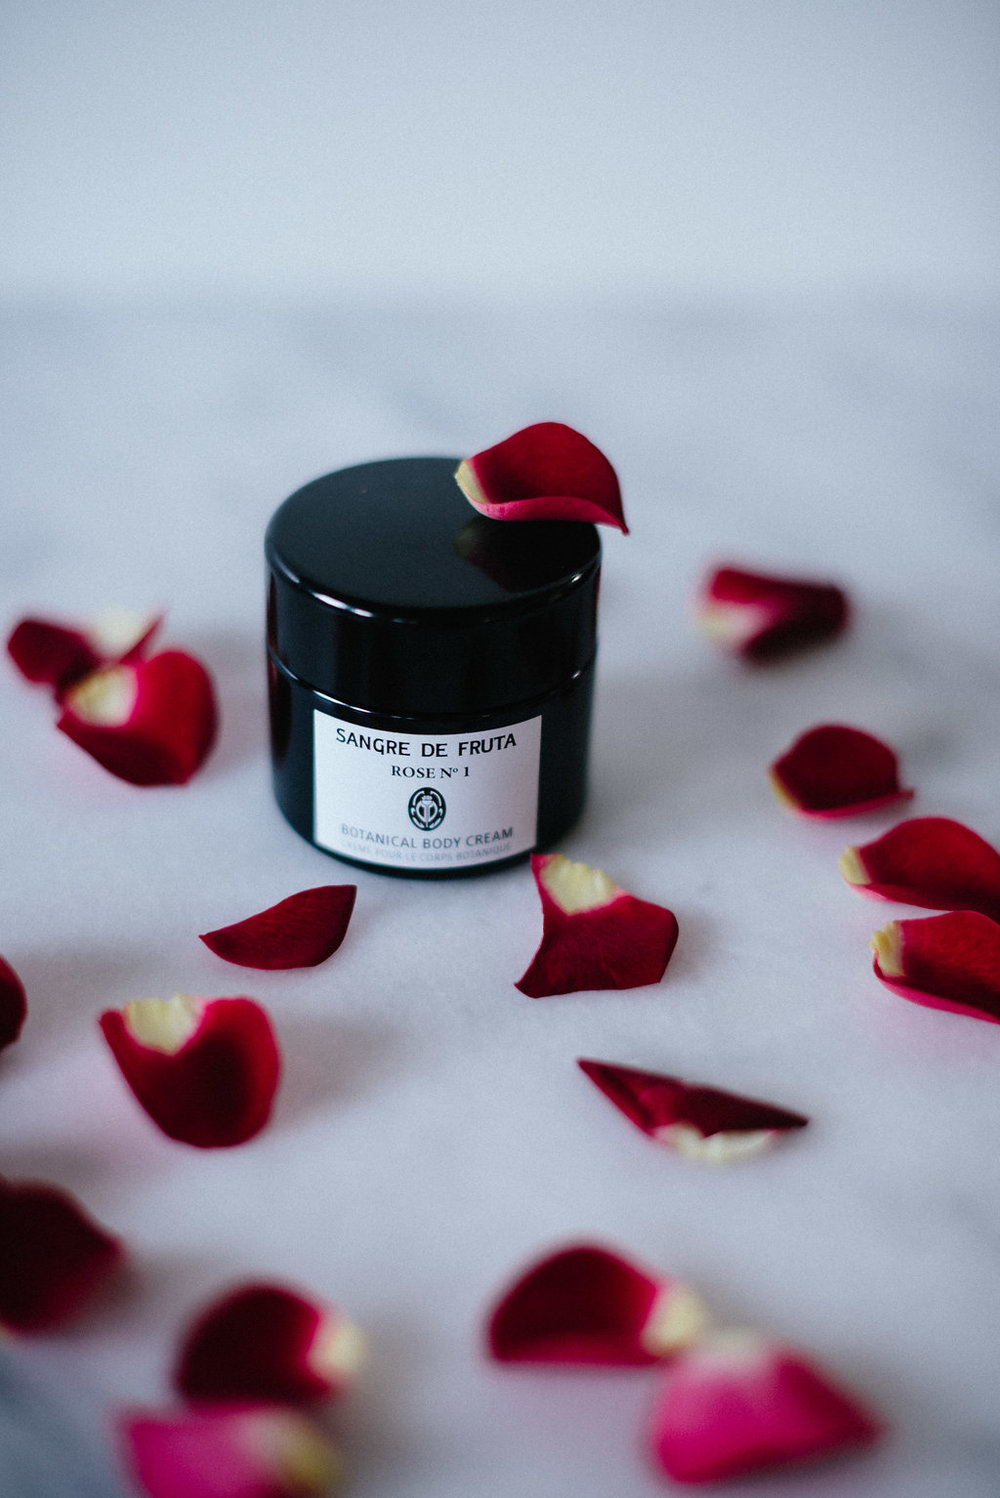 Blog Sangre De Fruta Jill Beauty Lip Matte 11 Flawless Maroon See What Our Friends Pike Petals Seattle Based Flower And Green Lover Wrote About Here Thank You Krista For The Gorgeous Photos